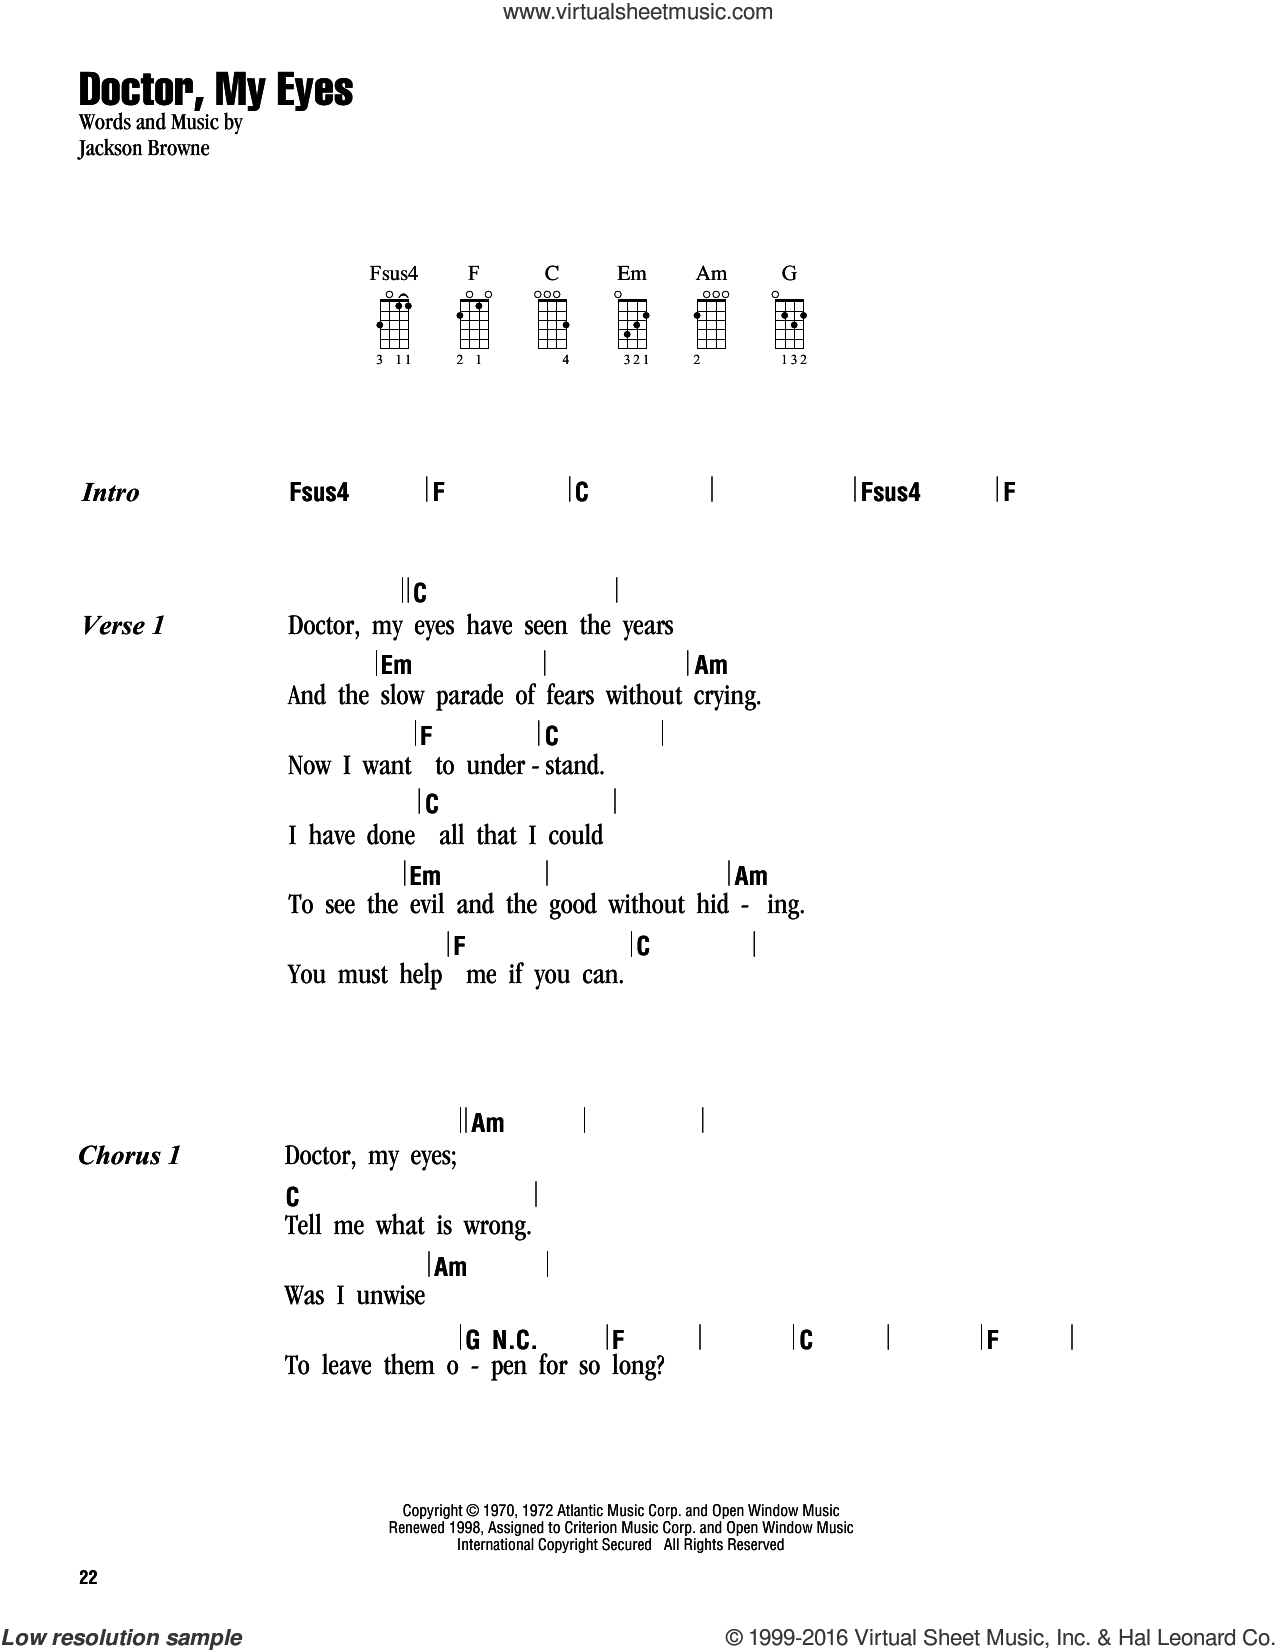 Doctor, My Eyes sheet music for ukulele (chords) by Jackson Browne, intermediate skill level